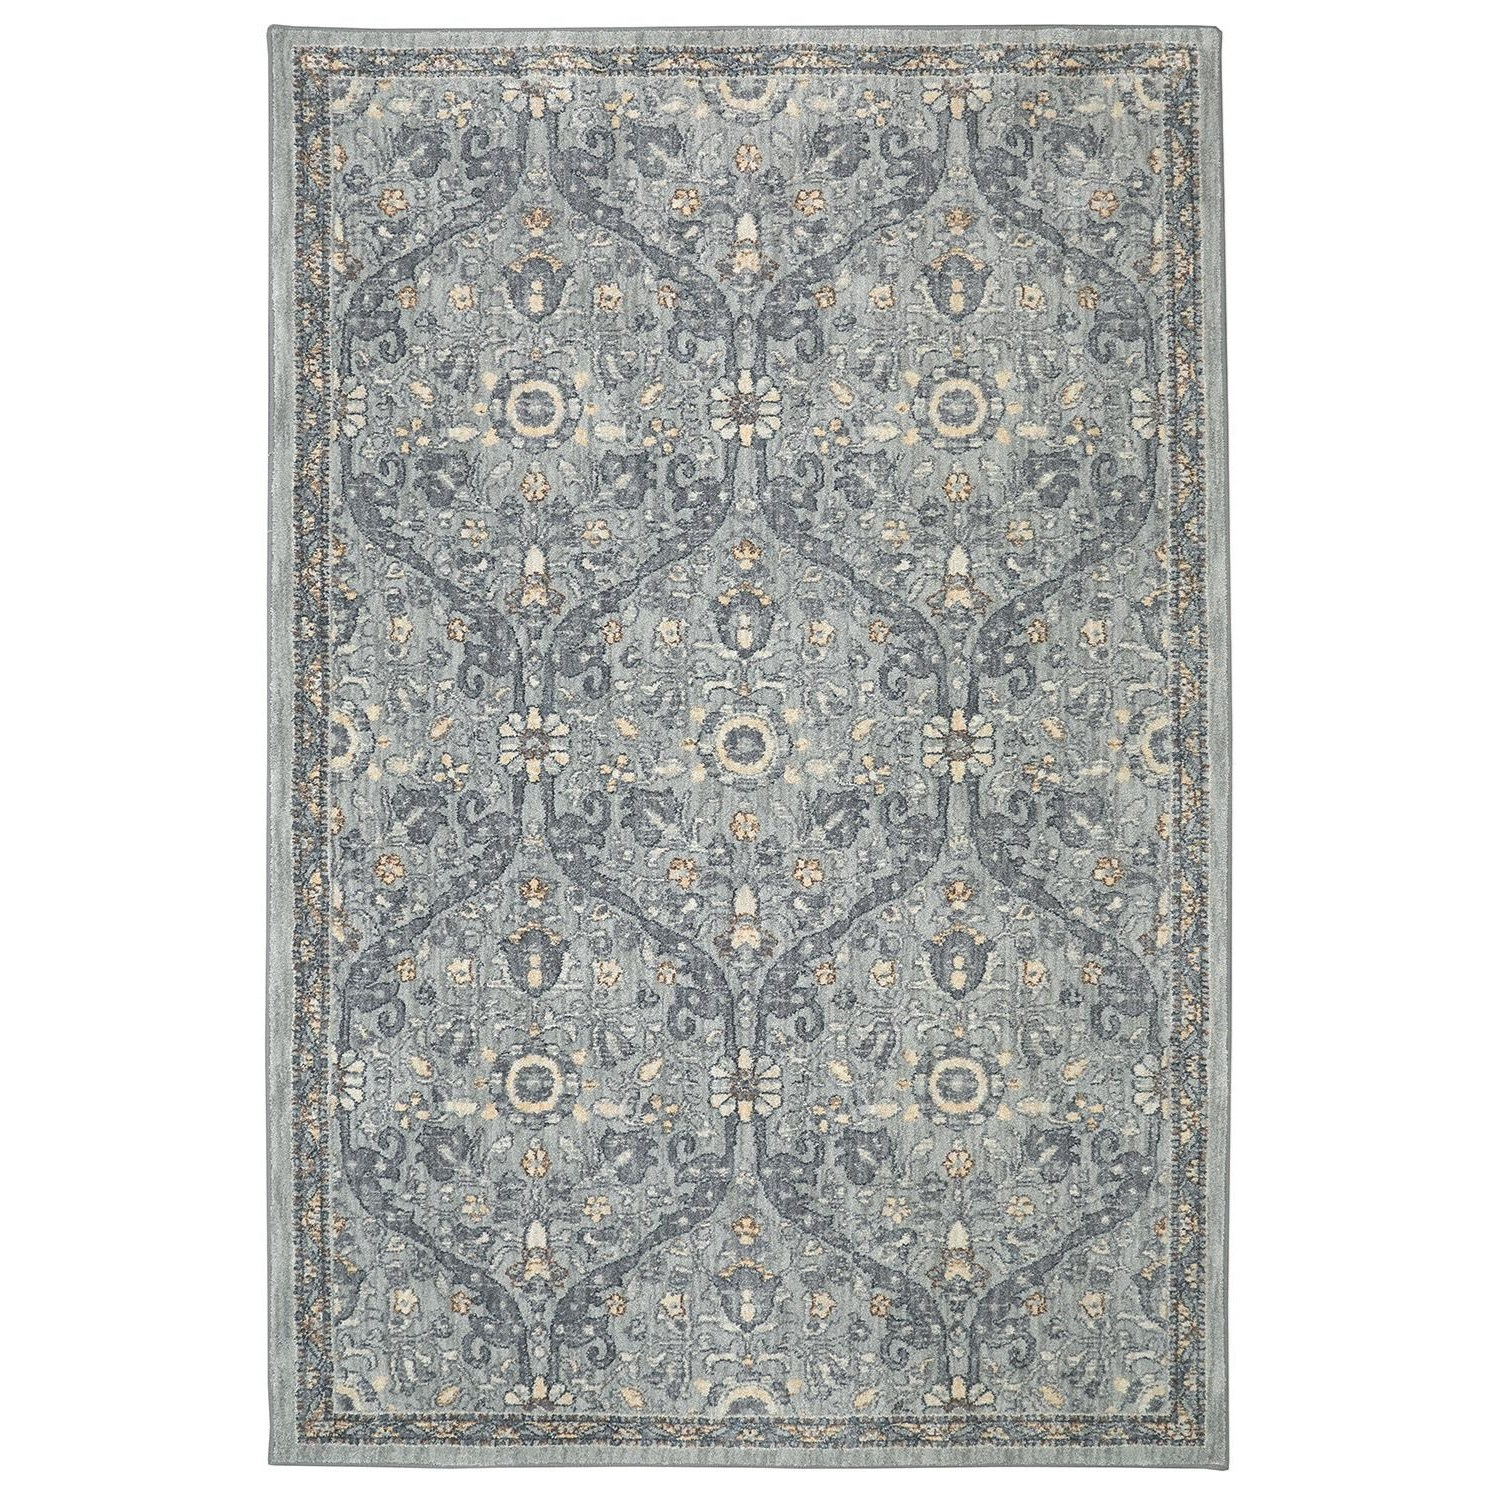 Karastan Rugs Euphoria 3'6x5'6 Galway Willow Grey Rug - Item Number: 90647 90075 042066